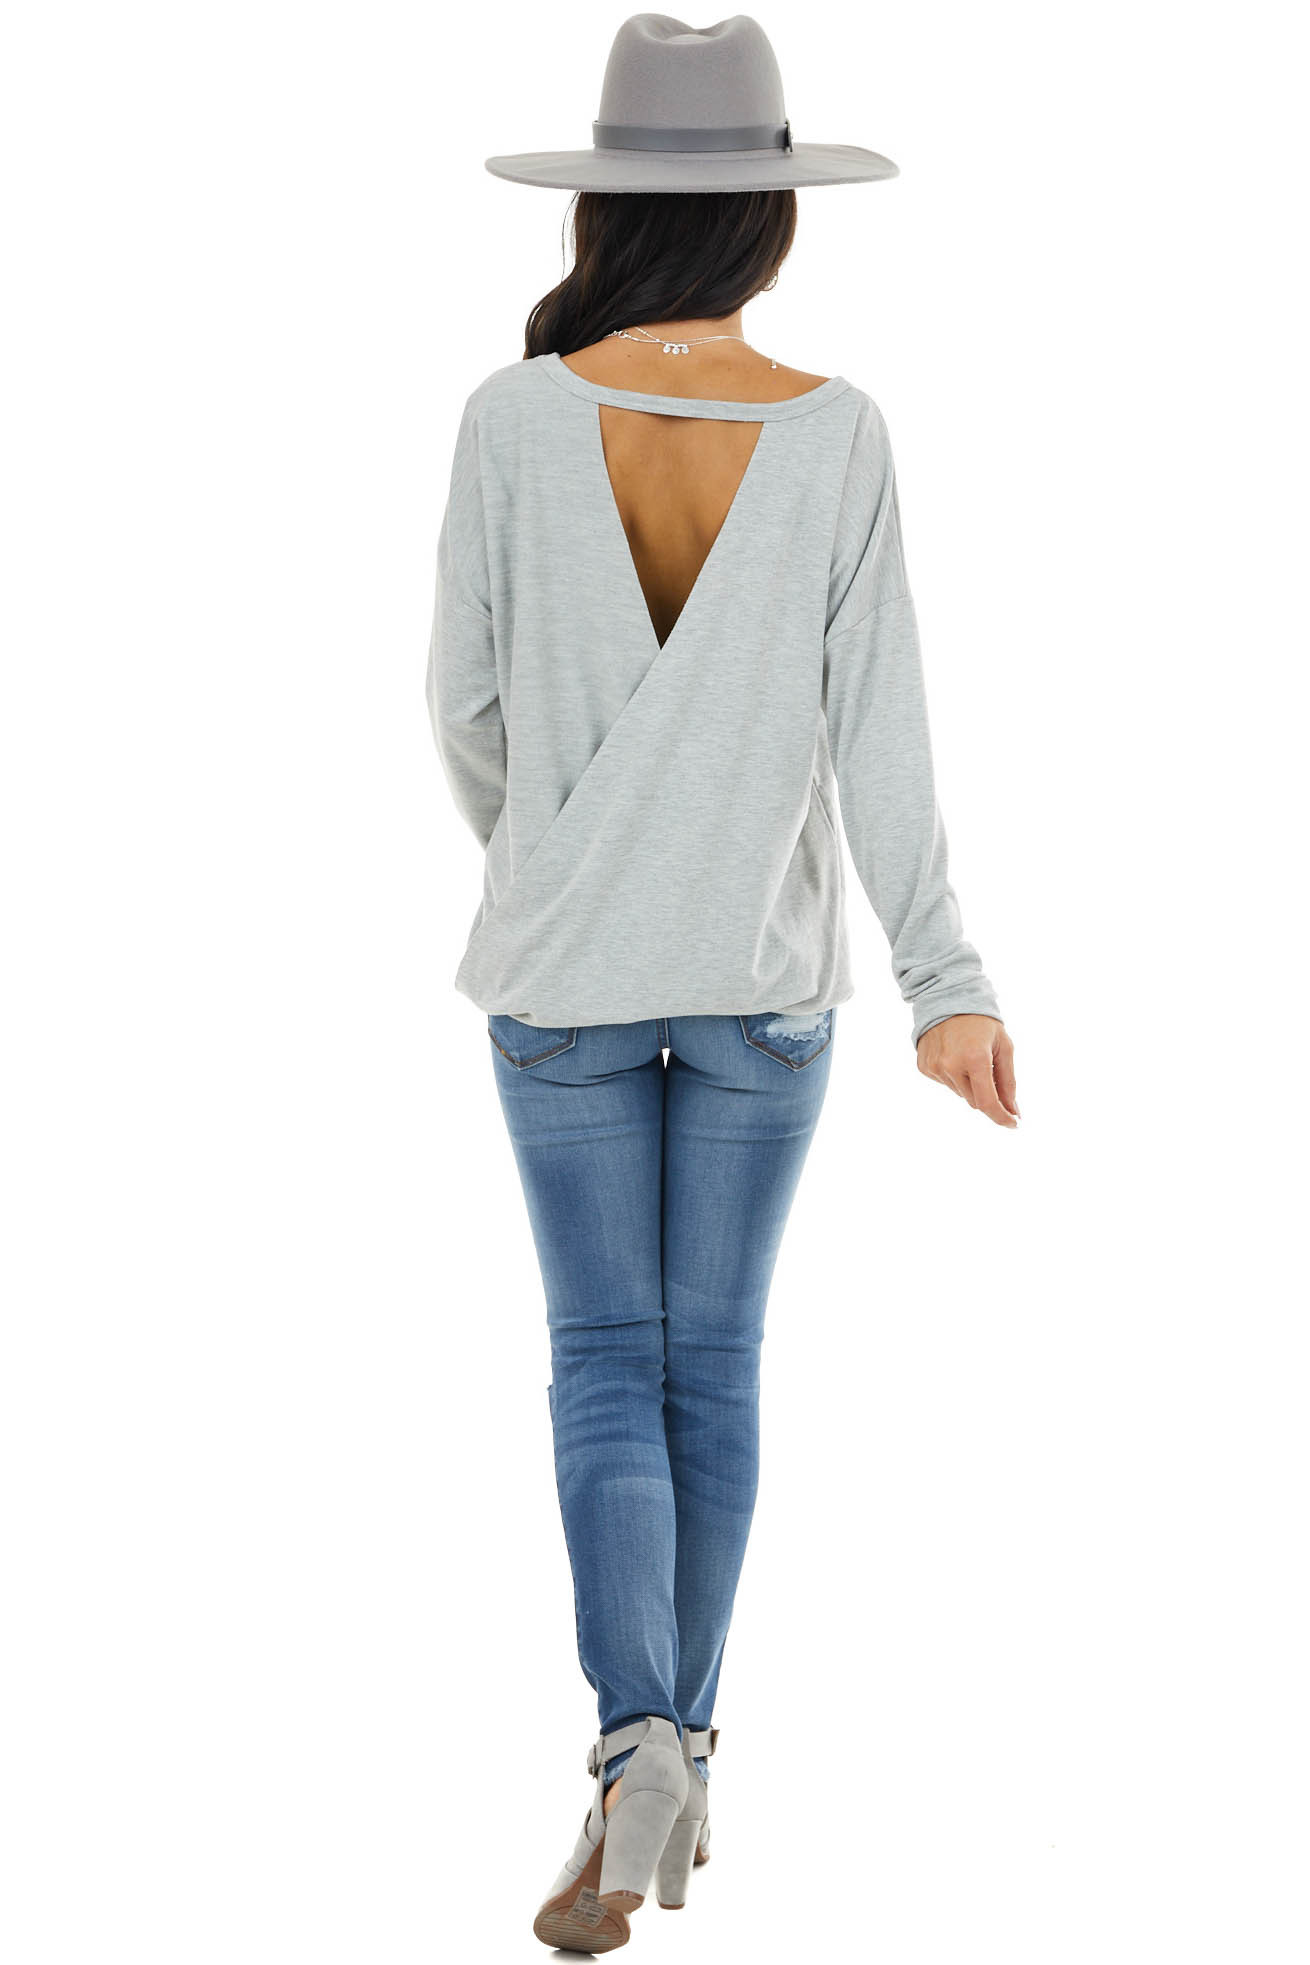 Dove Grey Long Sleeve Rounded Neck Top with Open Back